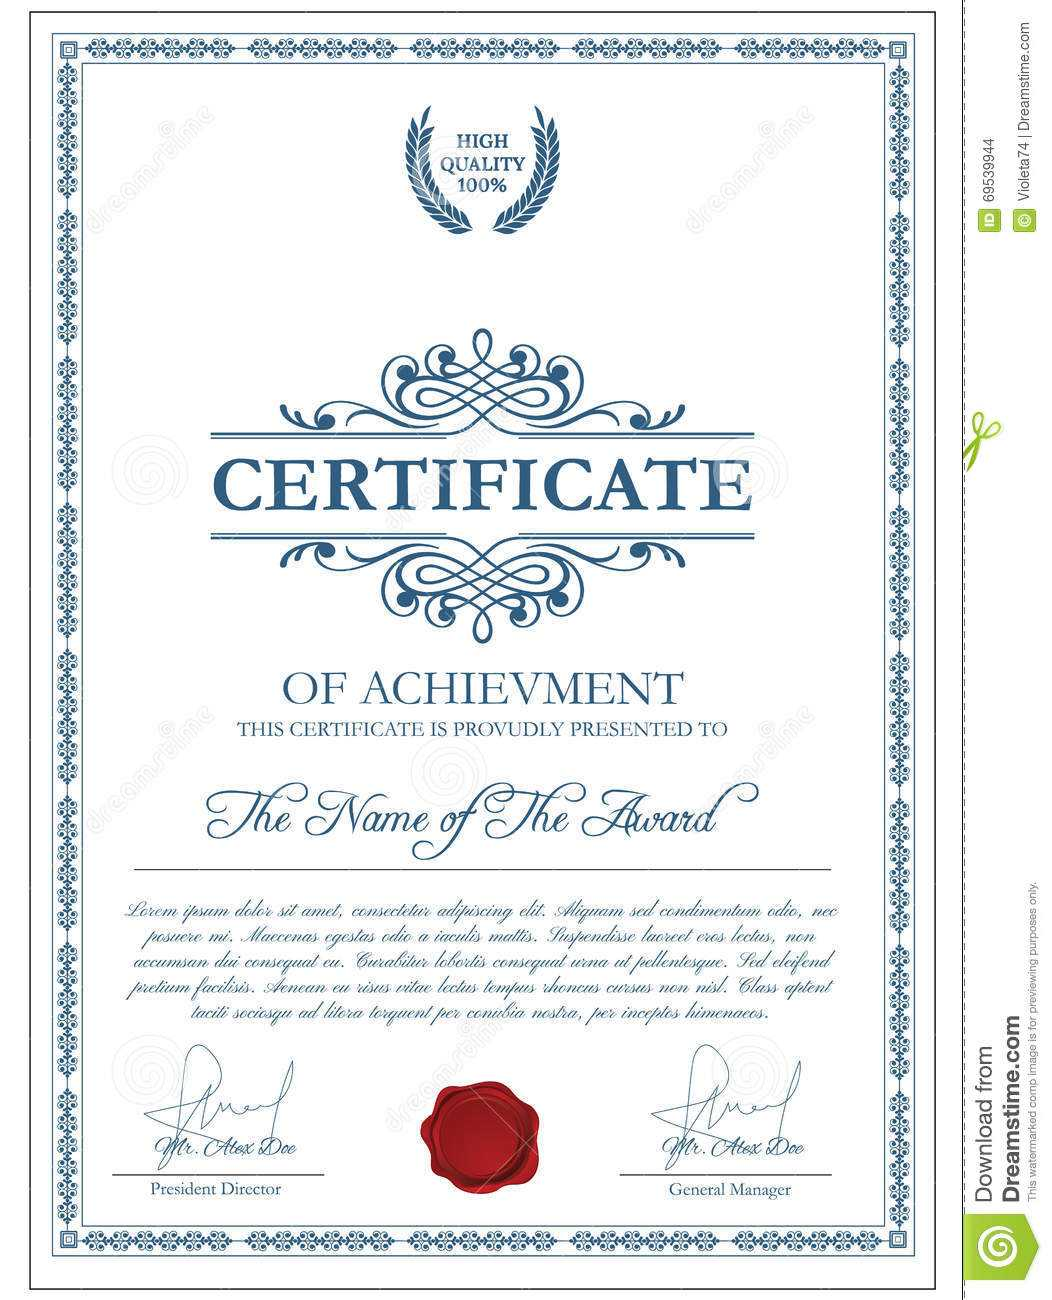 Certificate Template With Guilloche Elements. Stock Vector In Validation Certificate Template